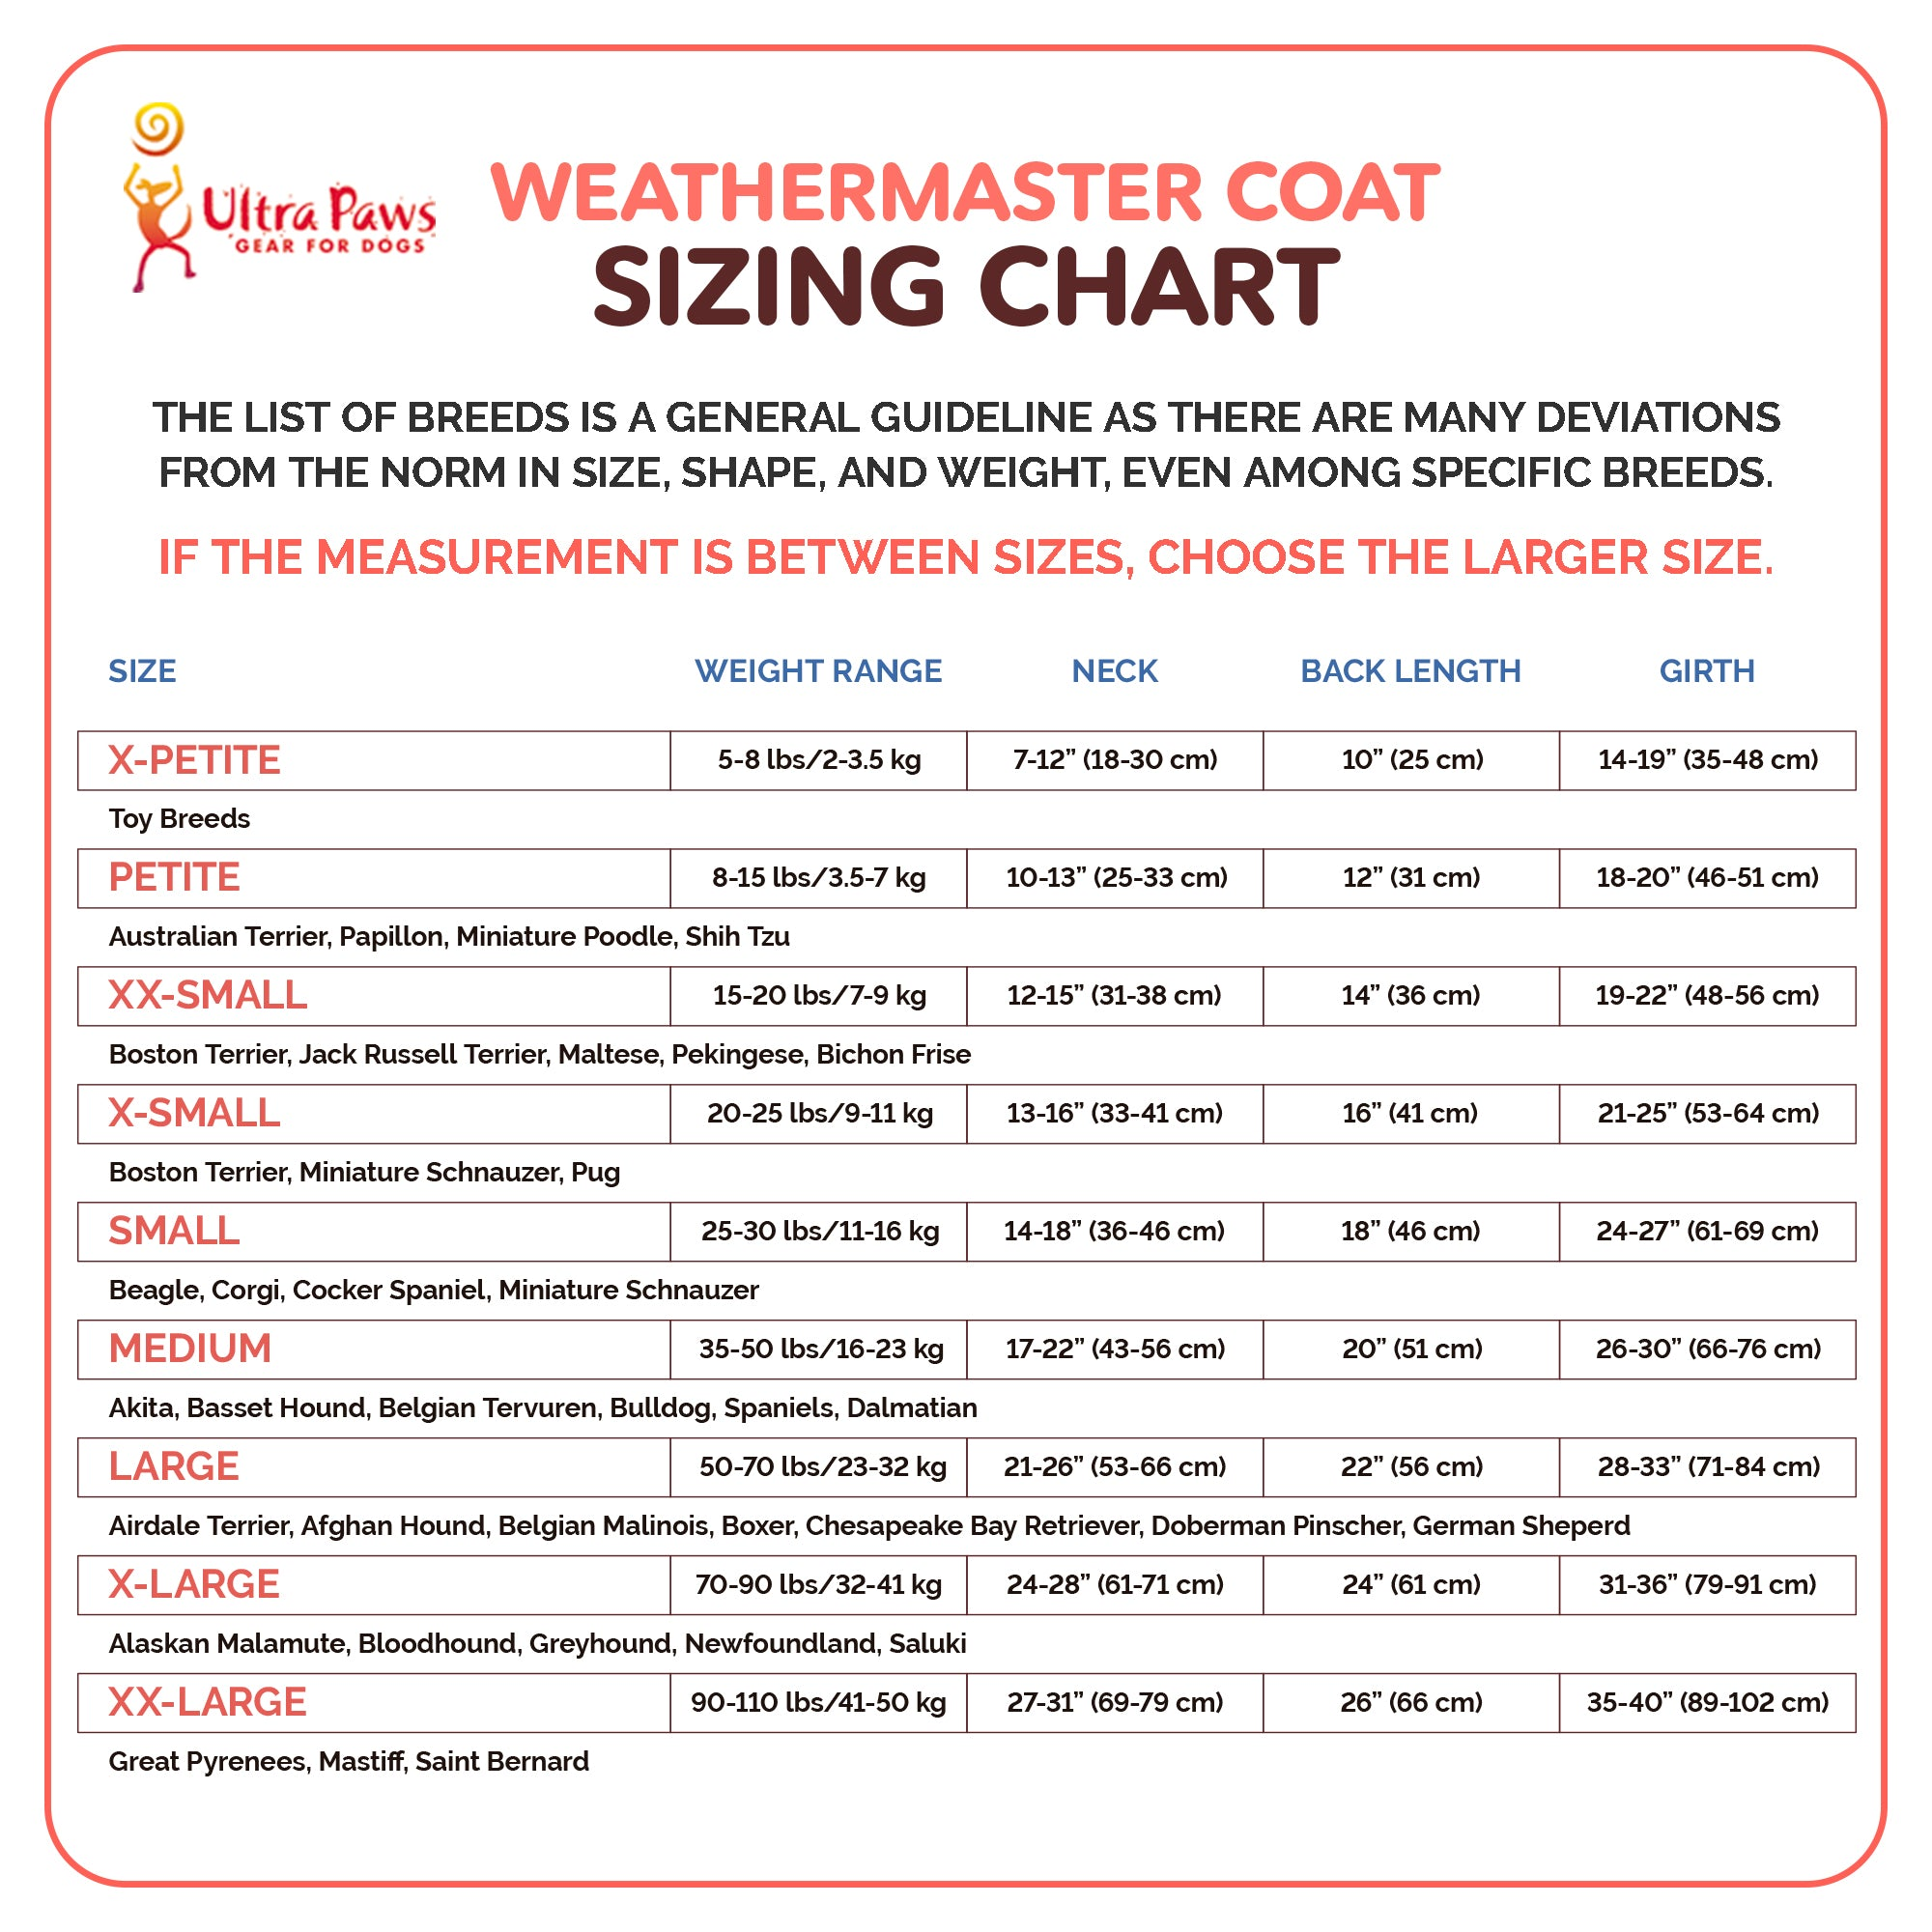 Ultra Paws Weather Master Coat Sizing Chart